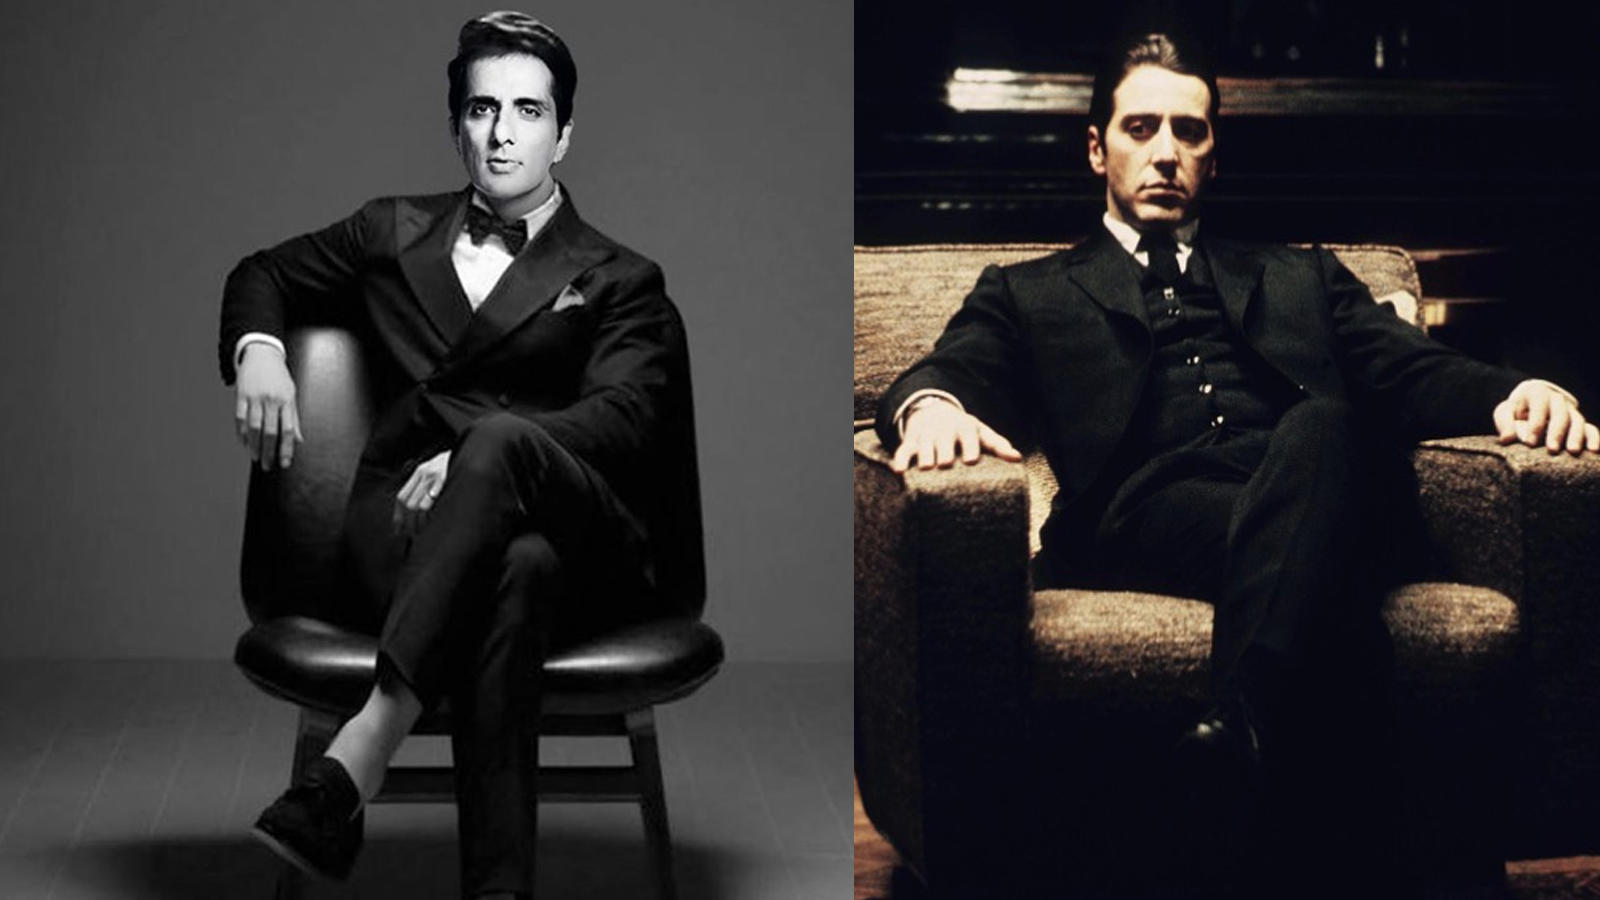 sonu-sood-looks-dapper-in-this-suited-avatar-sonal-chauhan-compares-him-with-godfather-actor-al-pacino